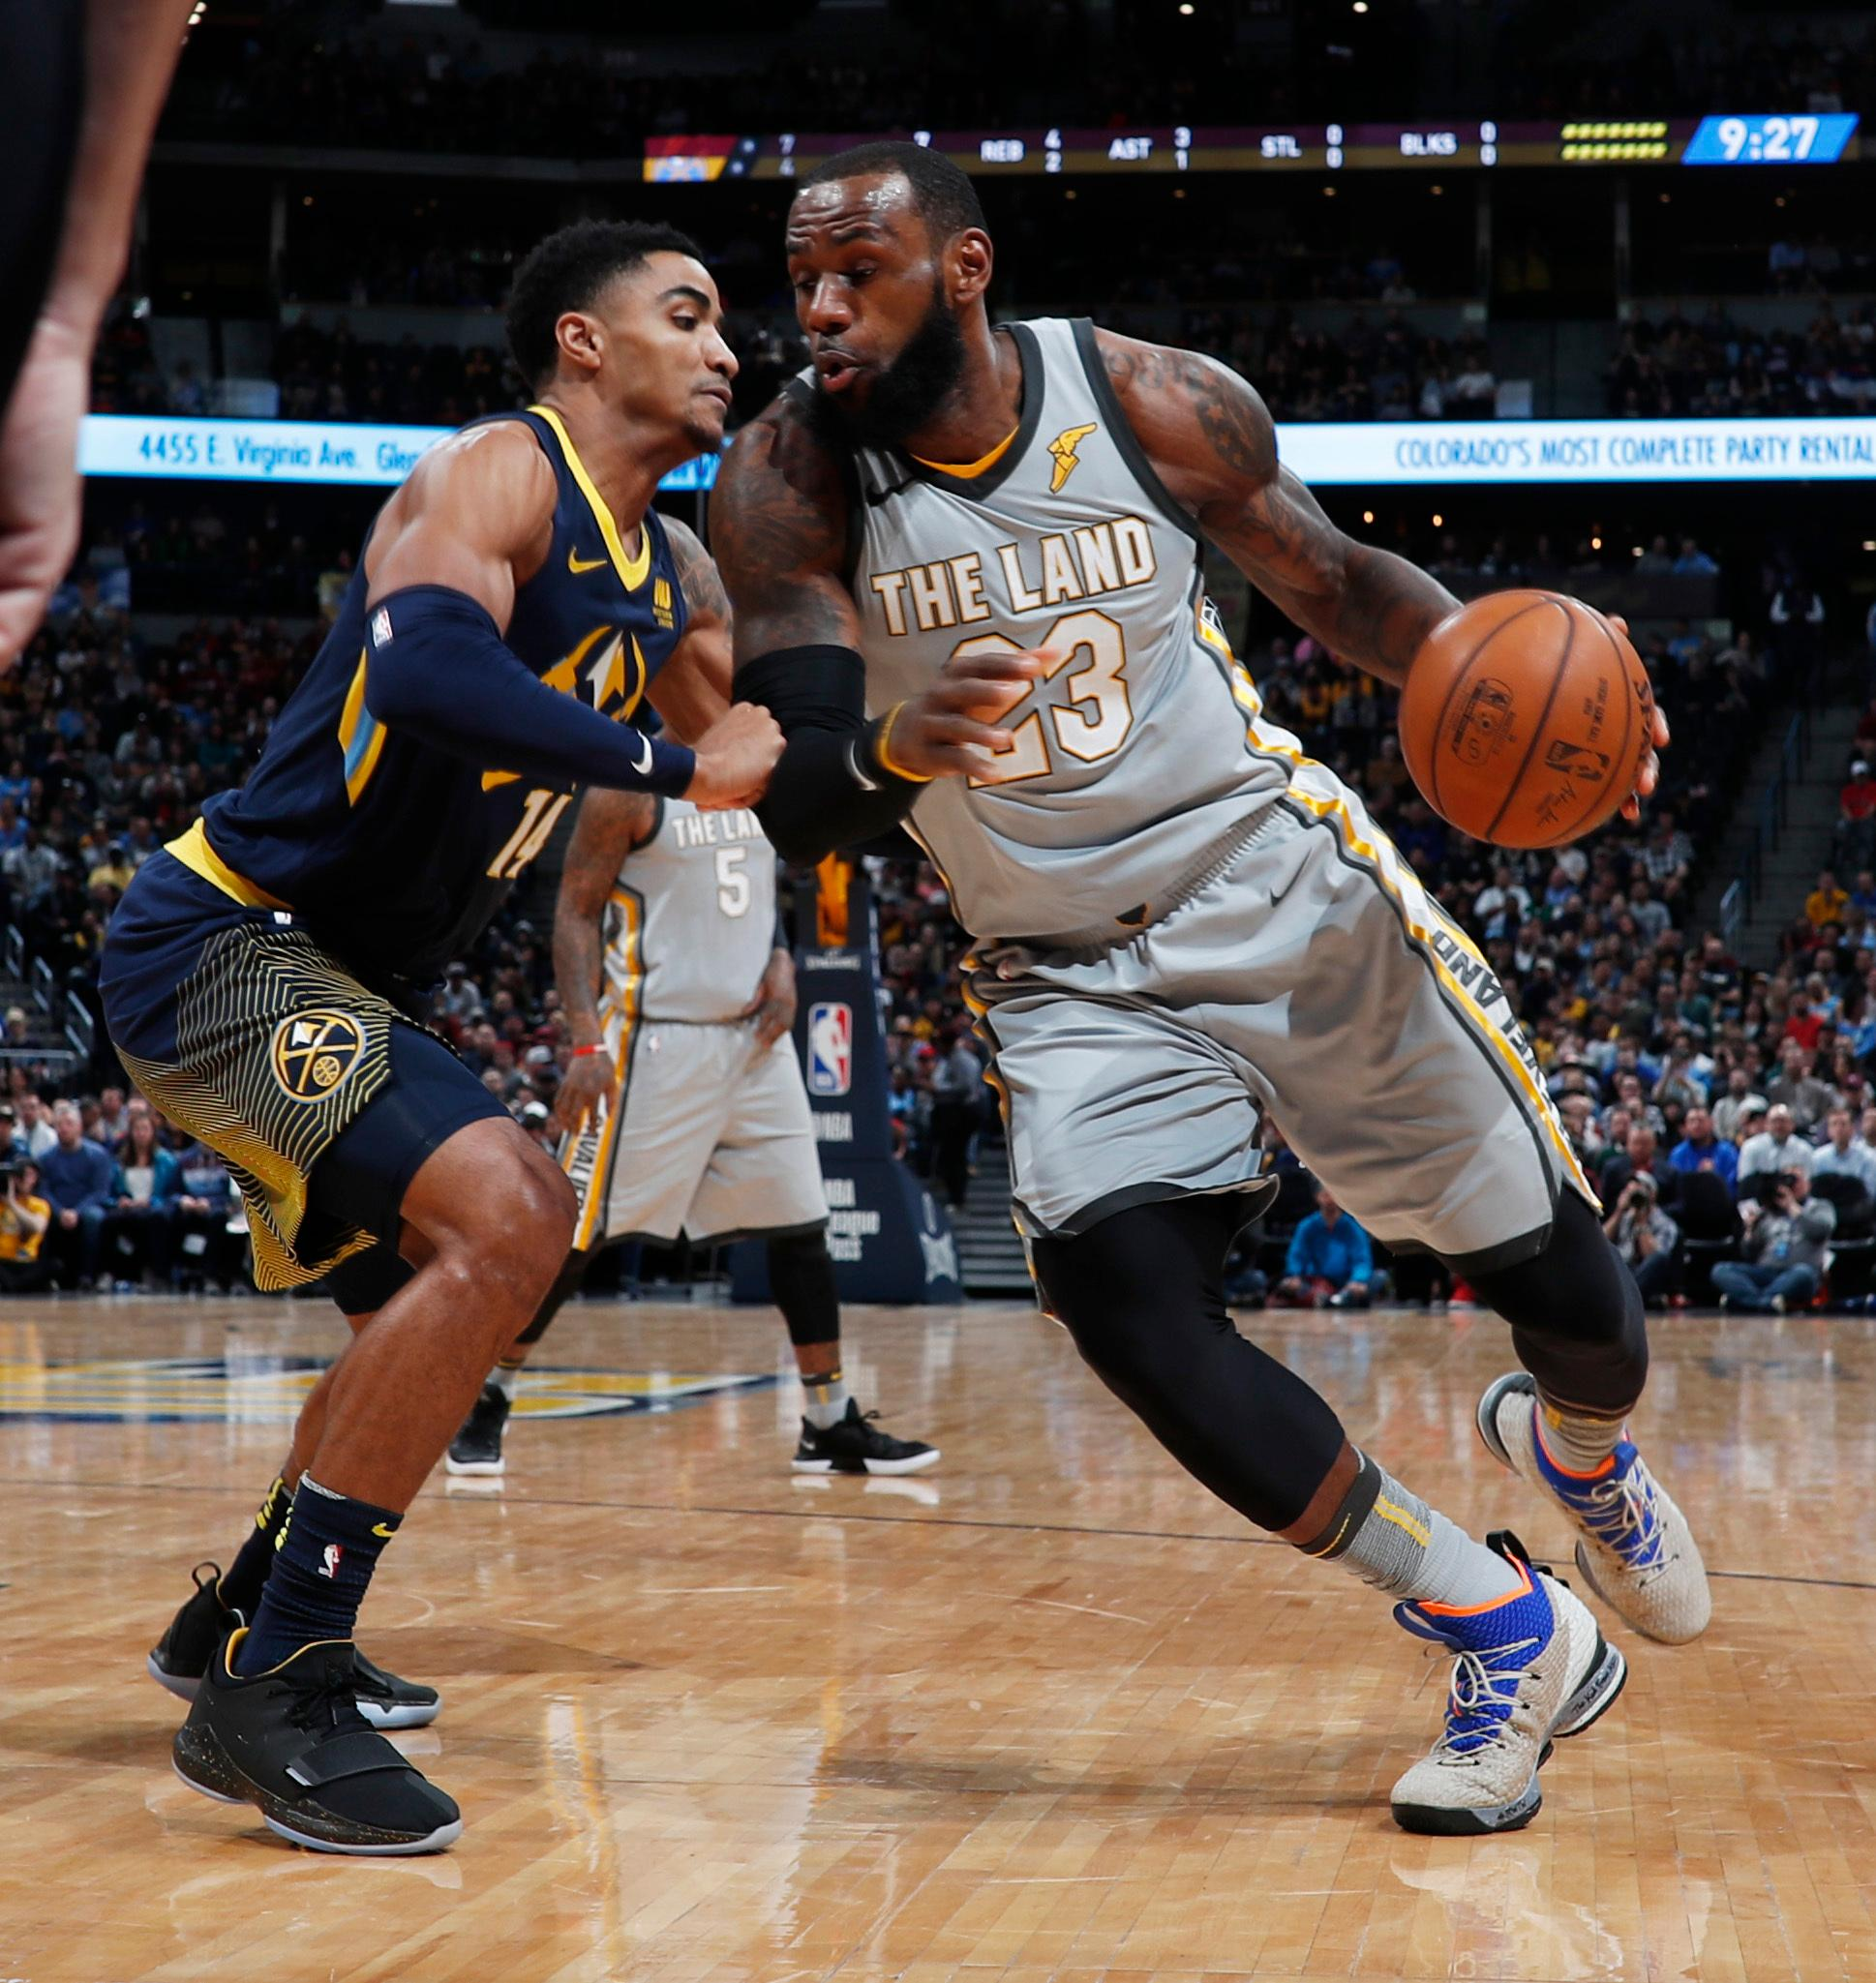 Denver Nuggets guard Gary Harris, left, defends as Cleveland Cavaliers forward LeBron James drives to the basket during the first half of an NBA basketball game Wednesday, March 7, 2018, in Denver. (AP Photo/David Zalubowski)